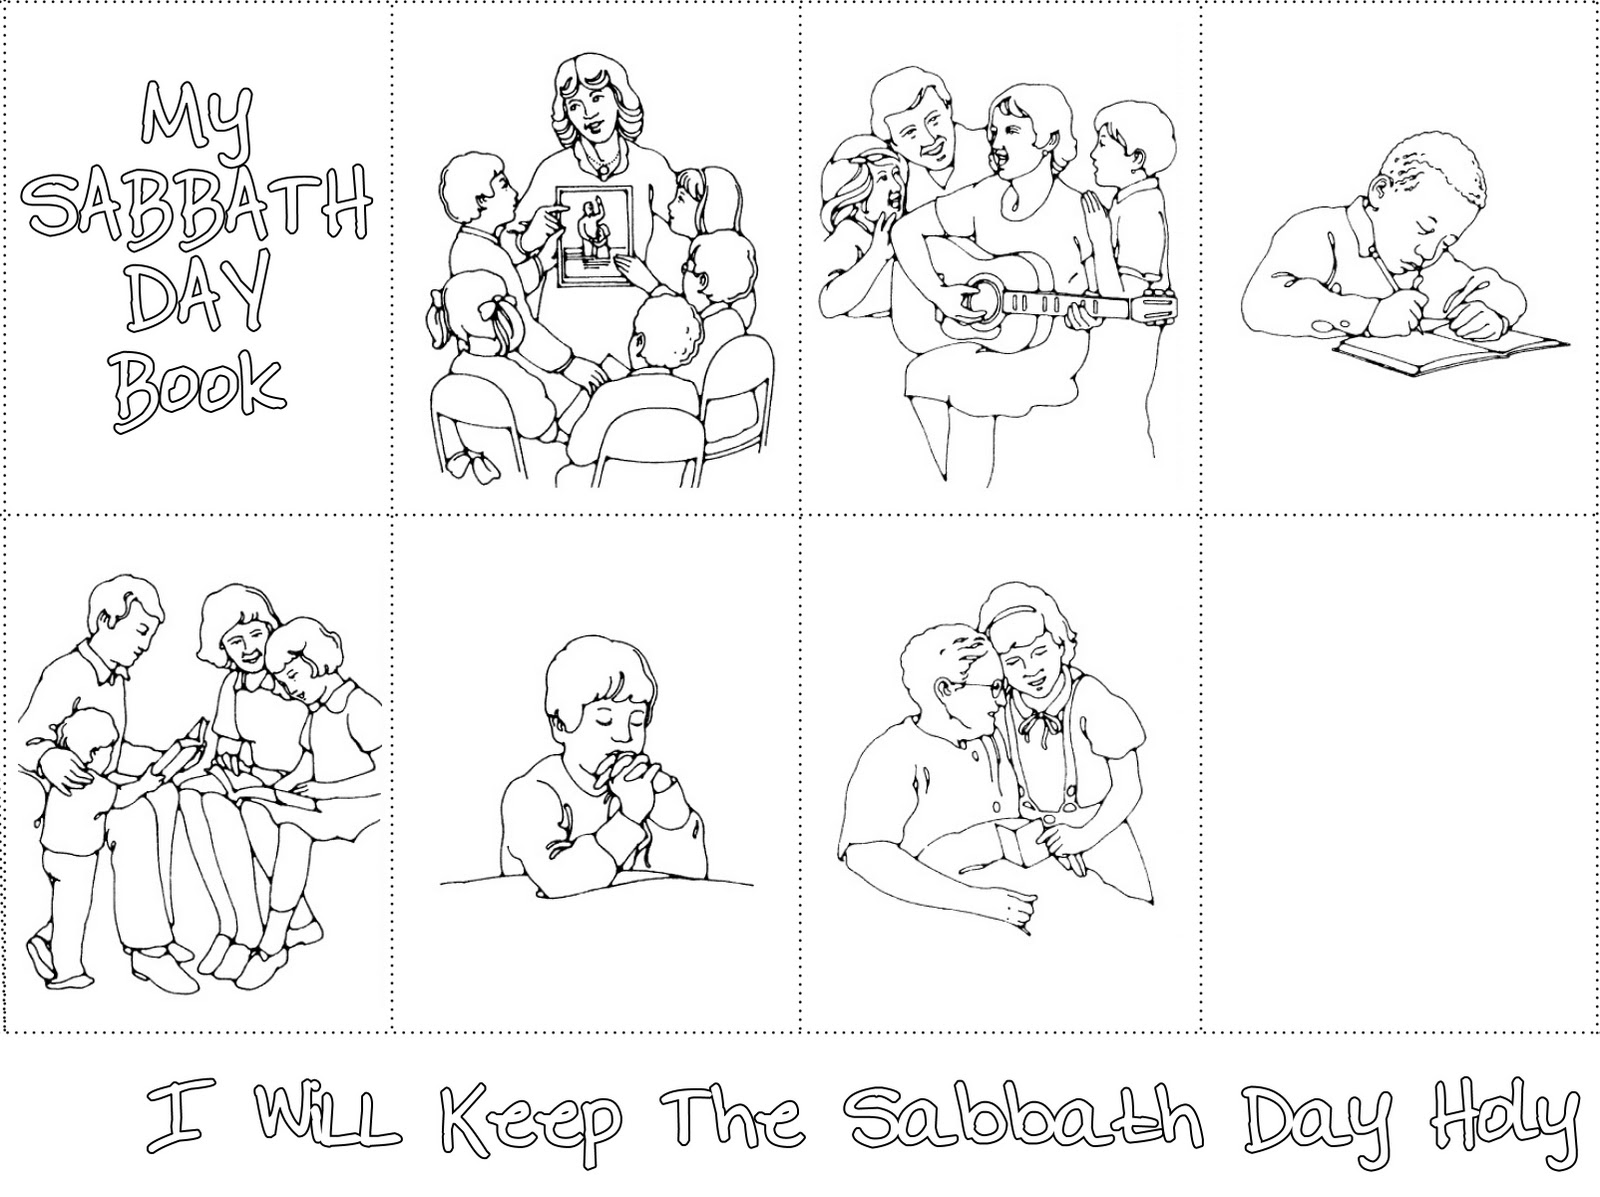 lds primary printables my sabbath day book